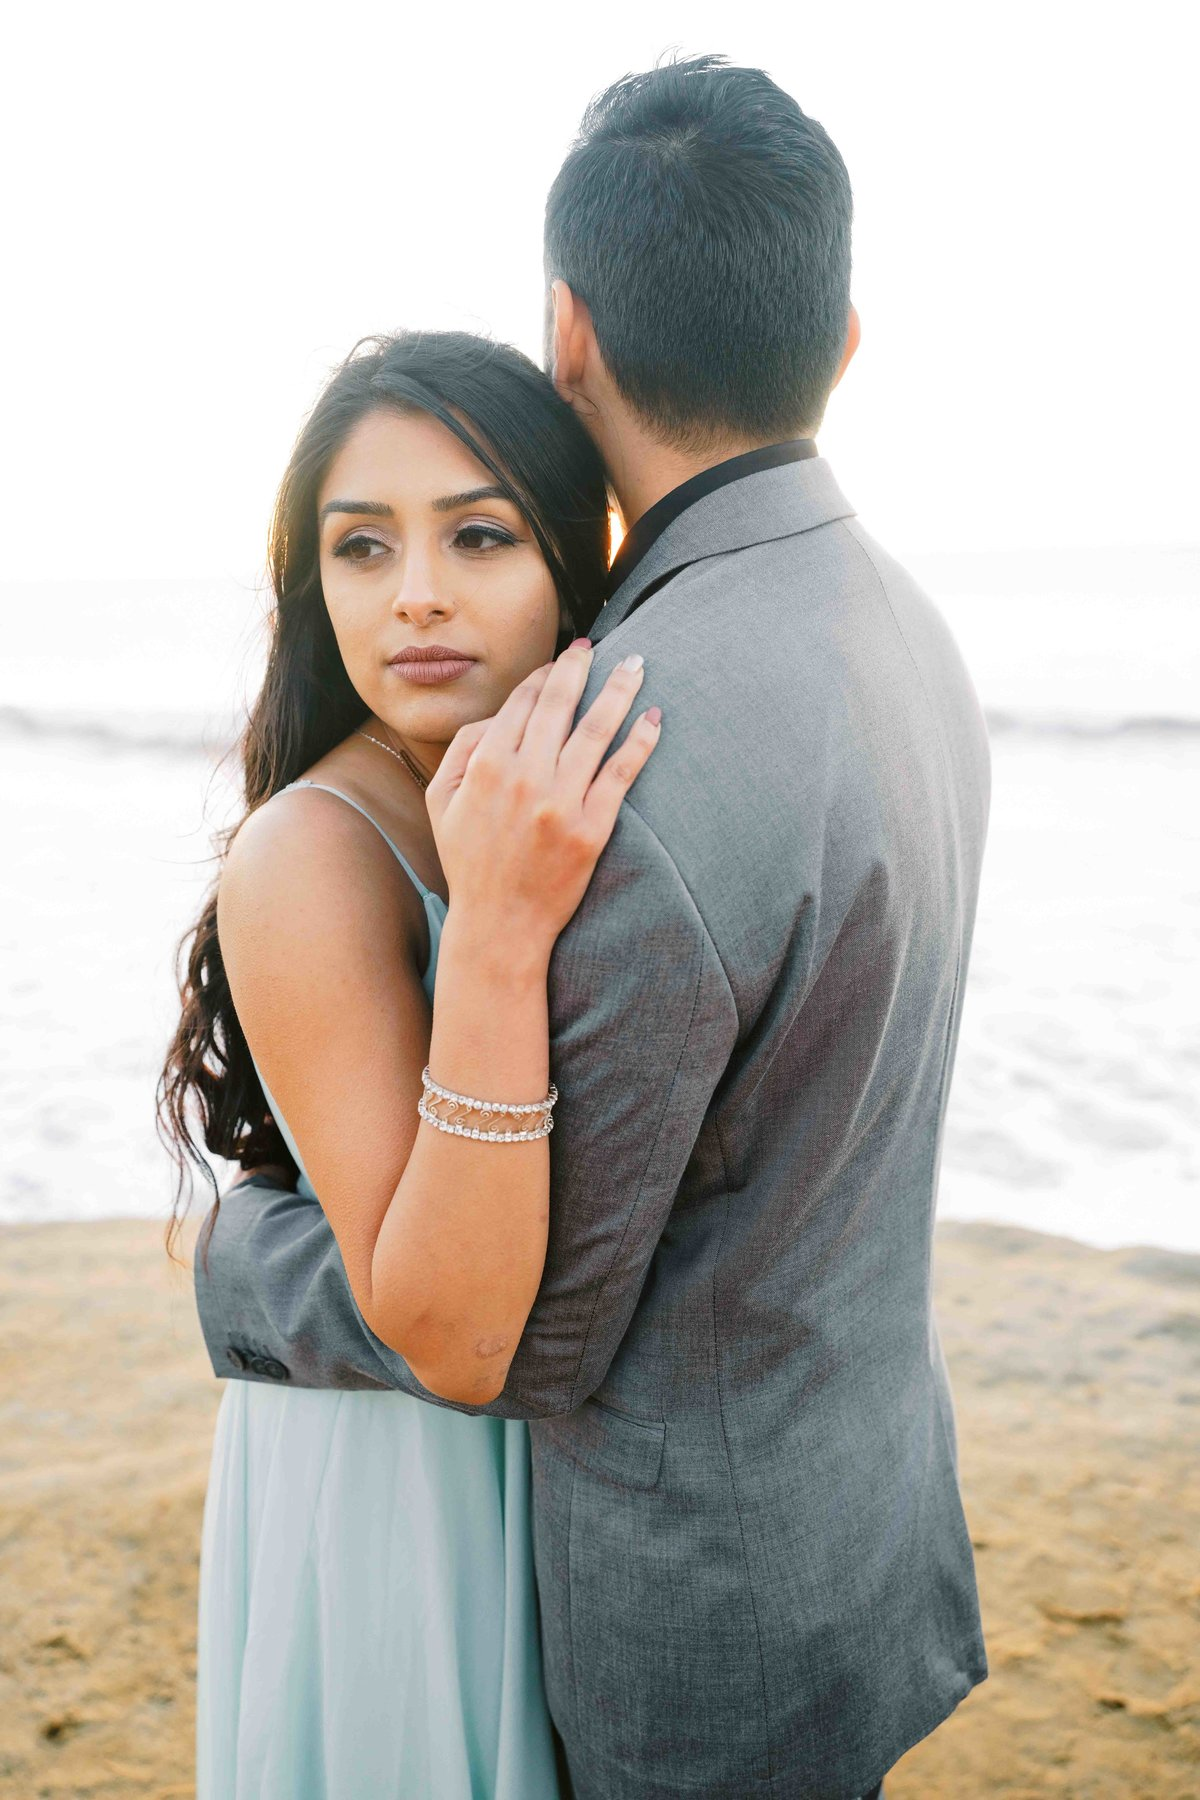 Babsie-Ly-Photography-San-Diego-Proposal-Engagement-Sunset-Cliffs-Indian-Couple-Dog-Surprise-004